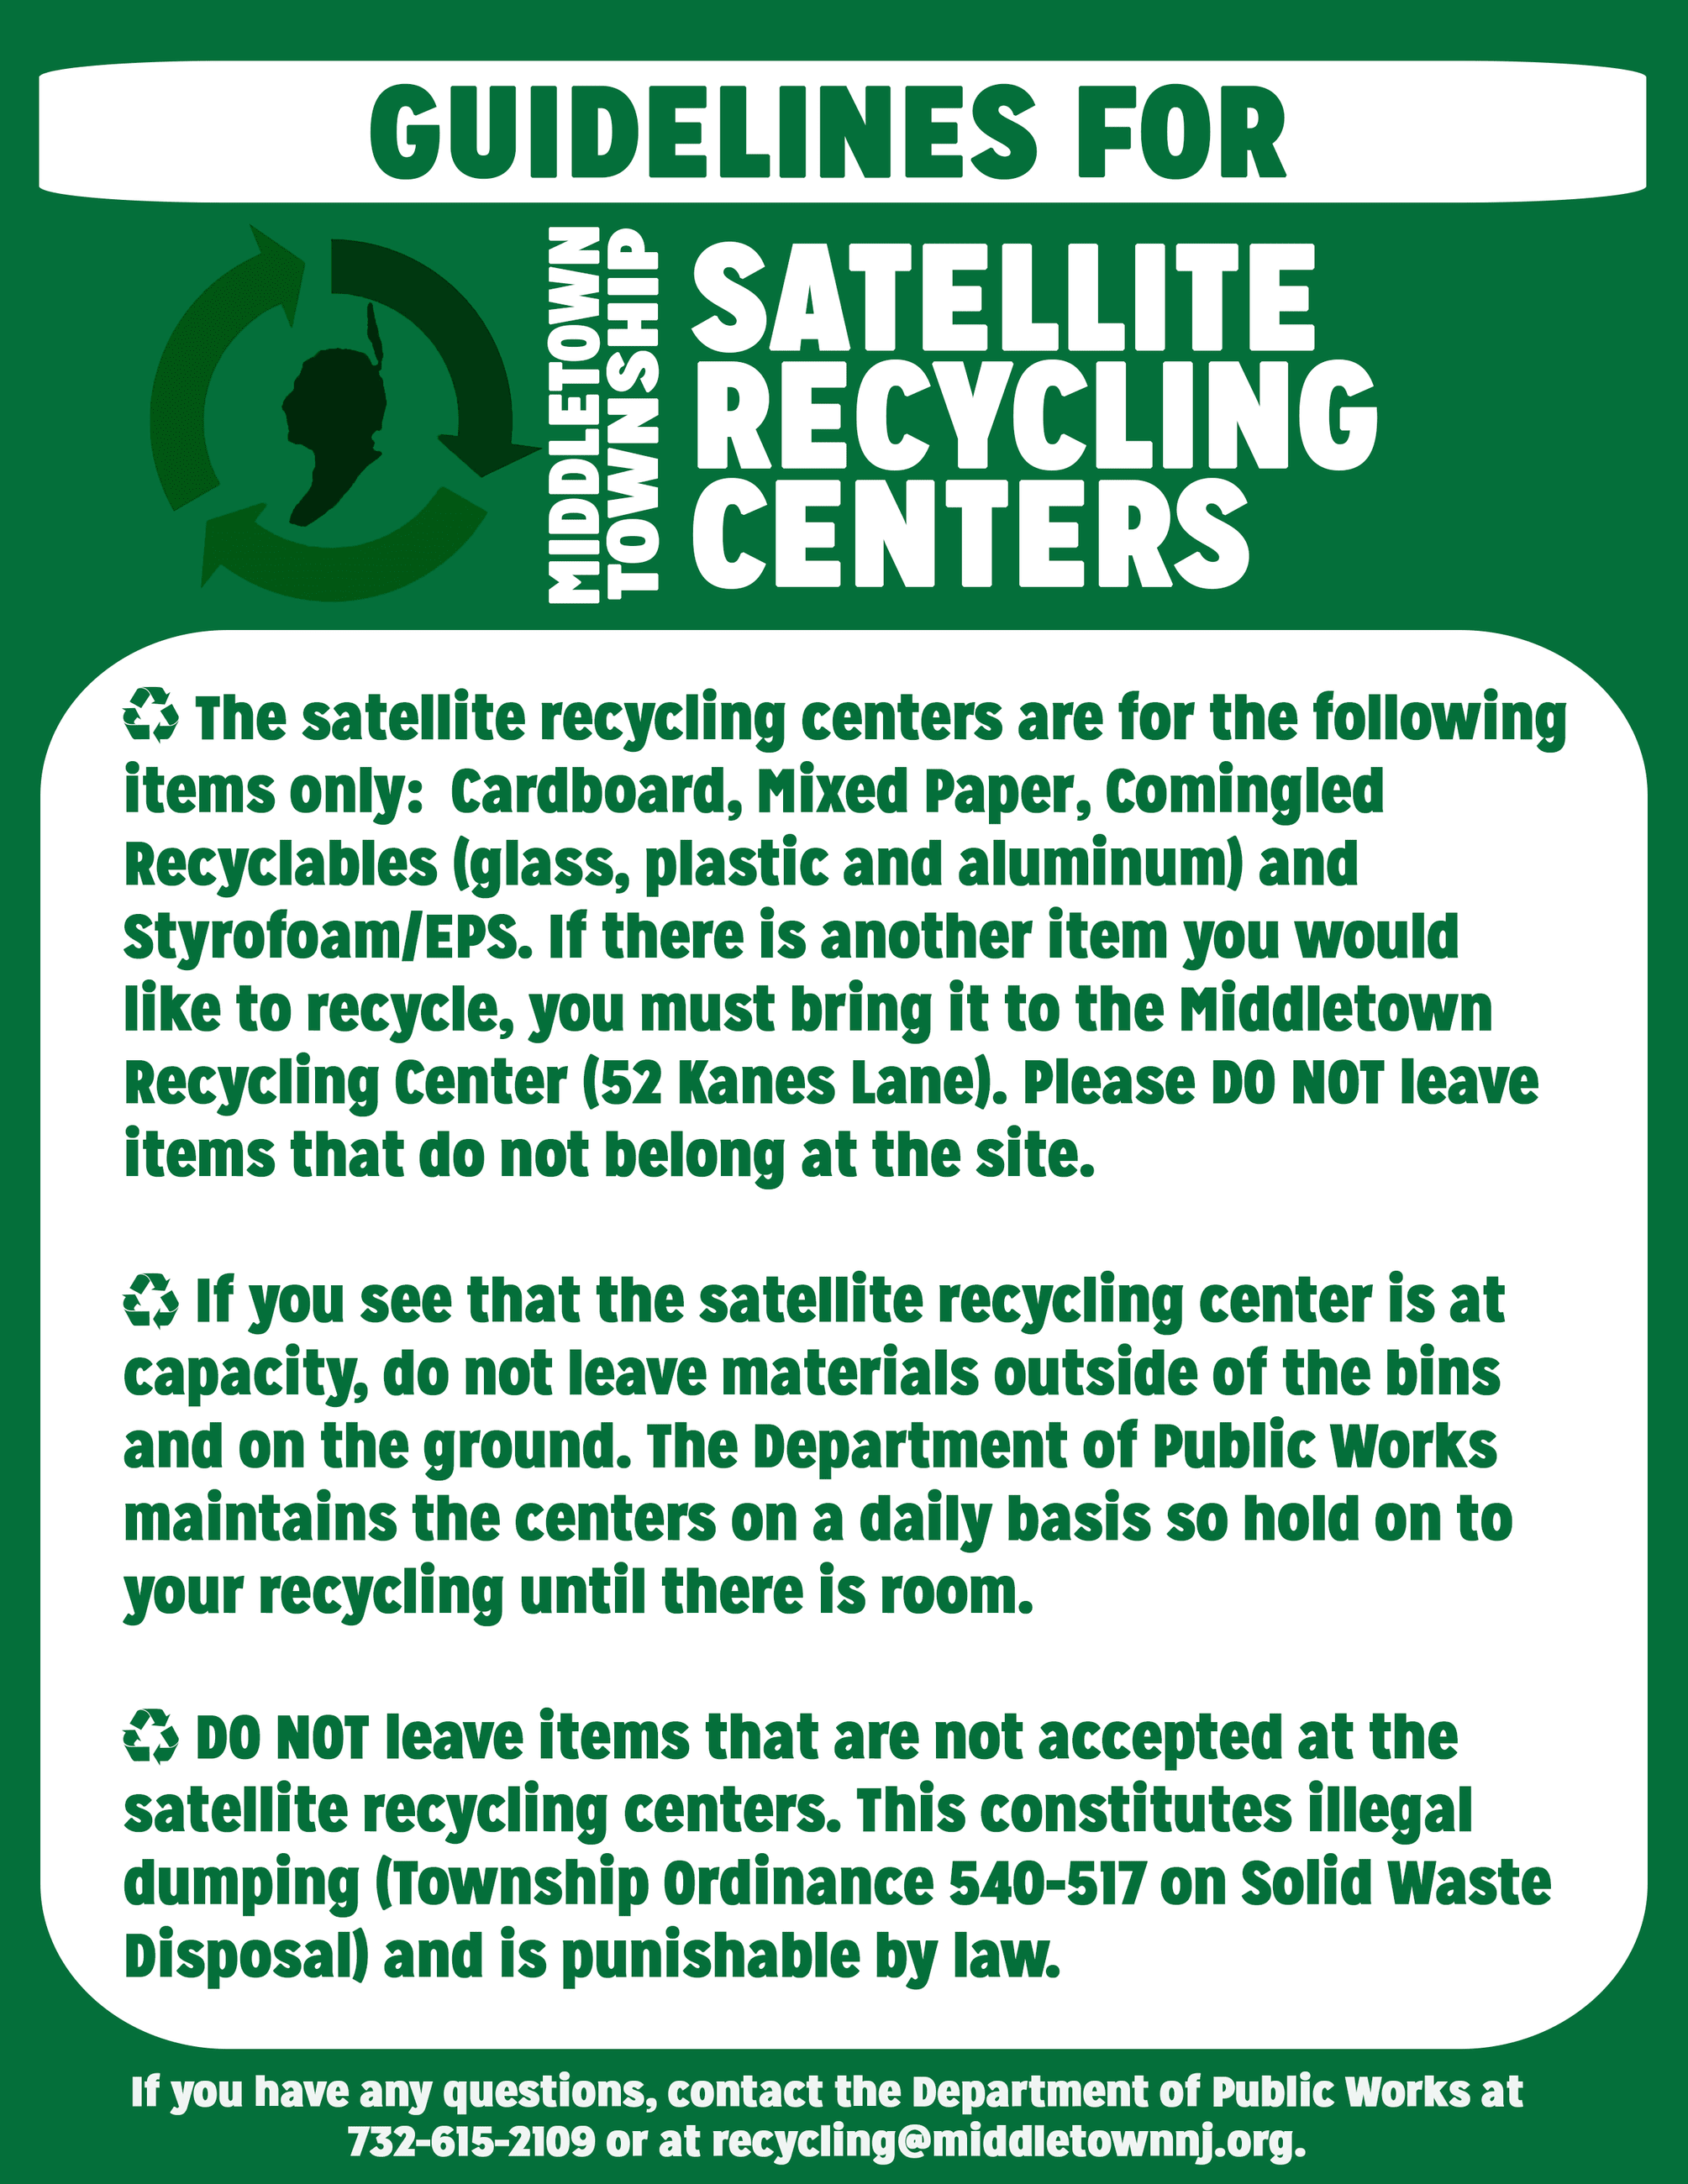 Guidelines-for-Satellite-Recycling-Centers